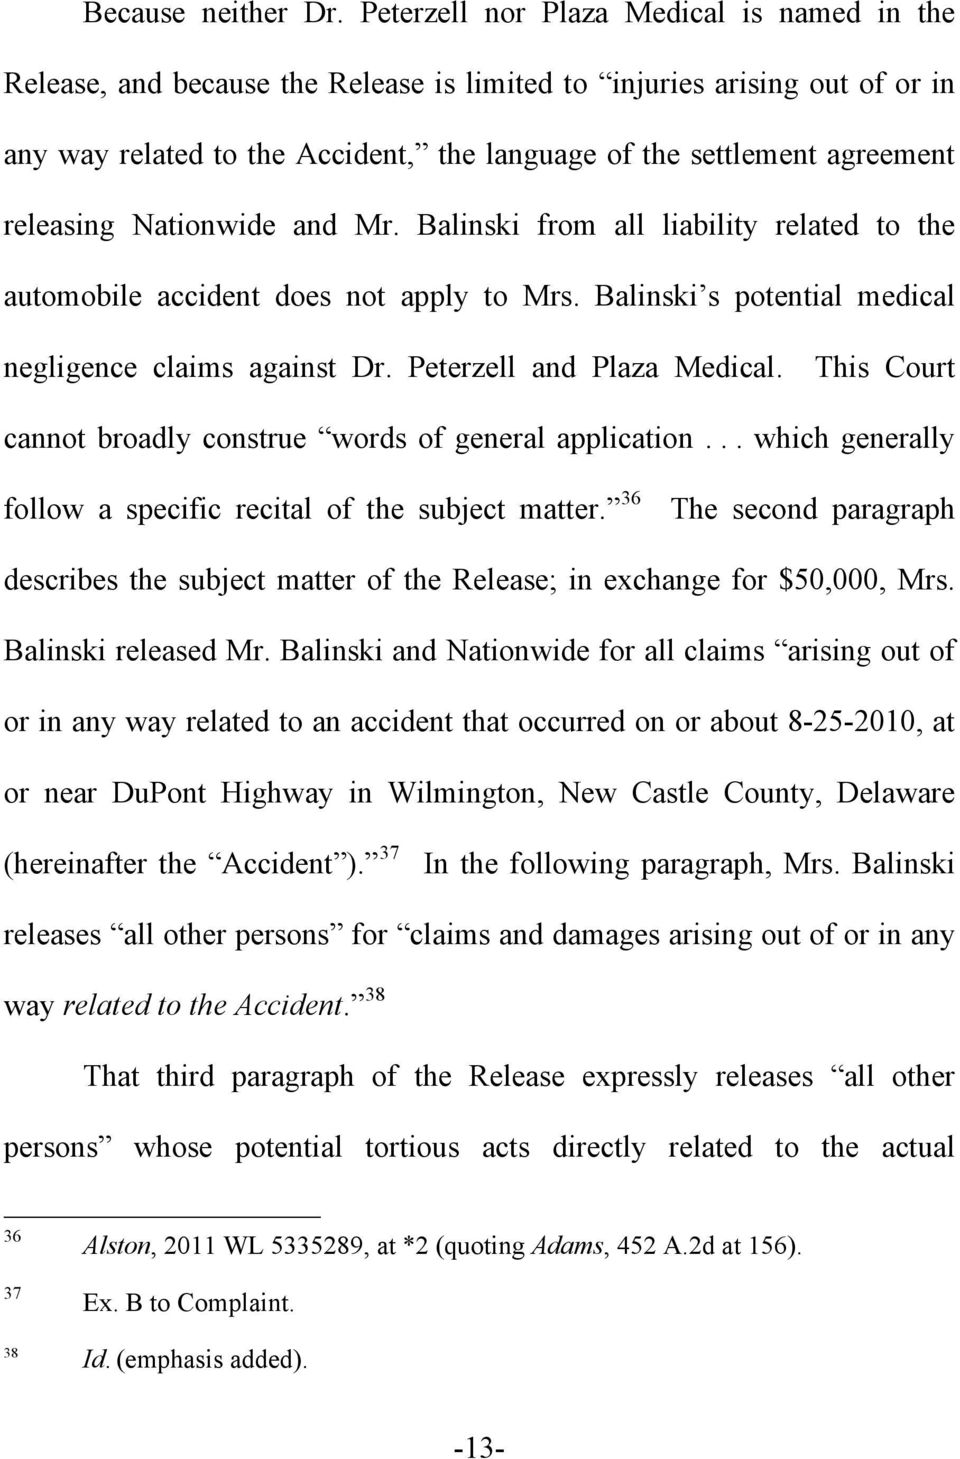 releasing Nationwide and Mr. Balinski from all liability related to the automobile accident does not apply to Mrs. Balinski s potential medical negligence claims against Dr.